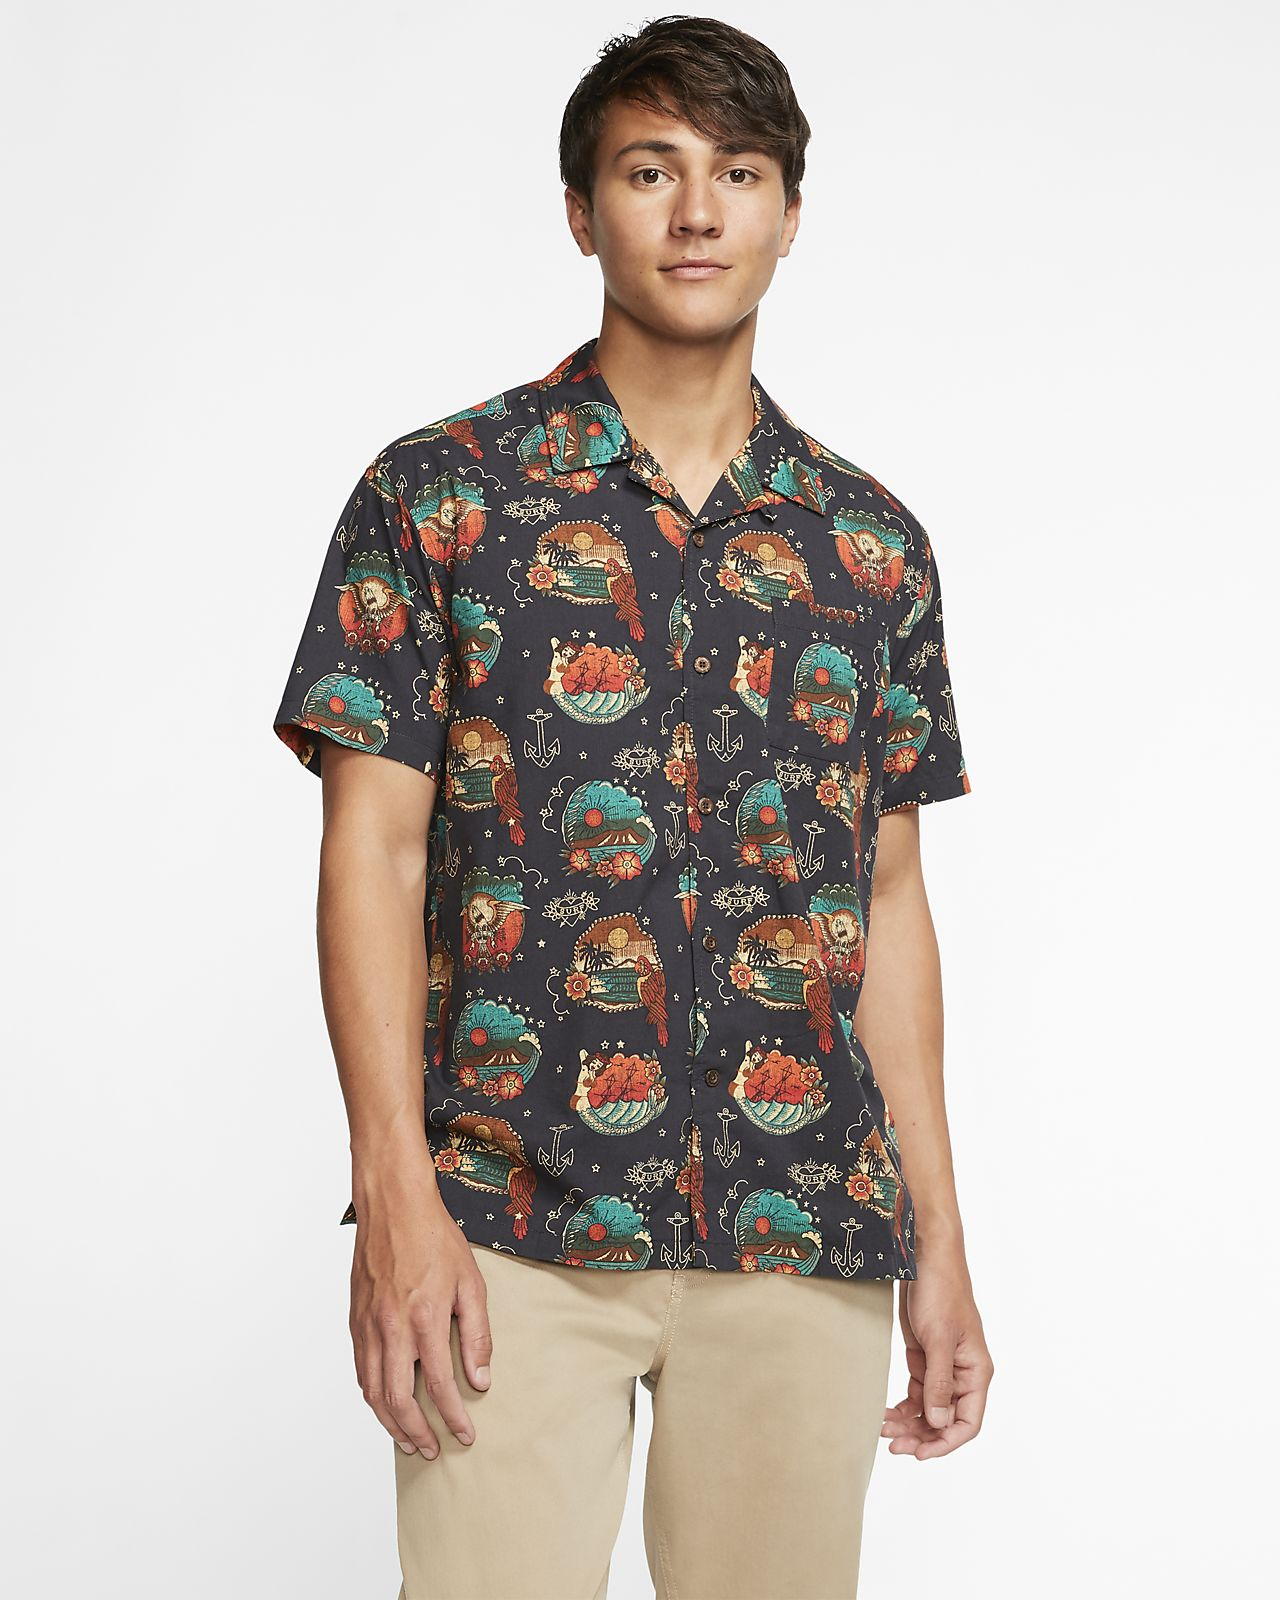 Hurley Tropic Flash Men's Short-Sleeve Top